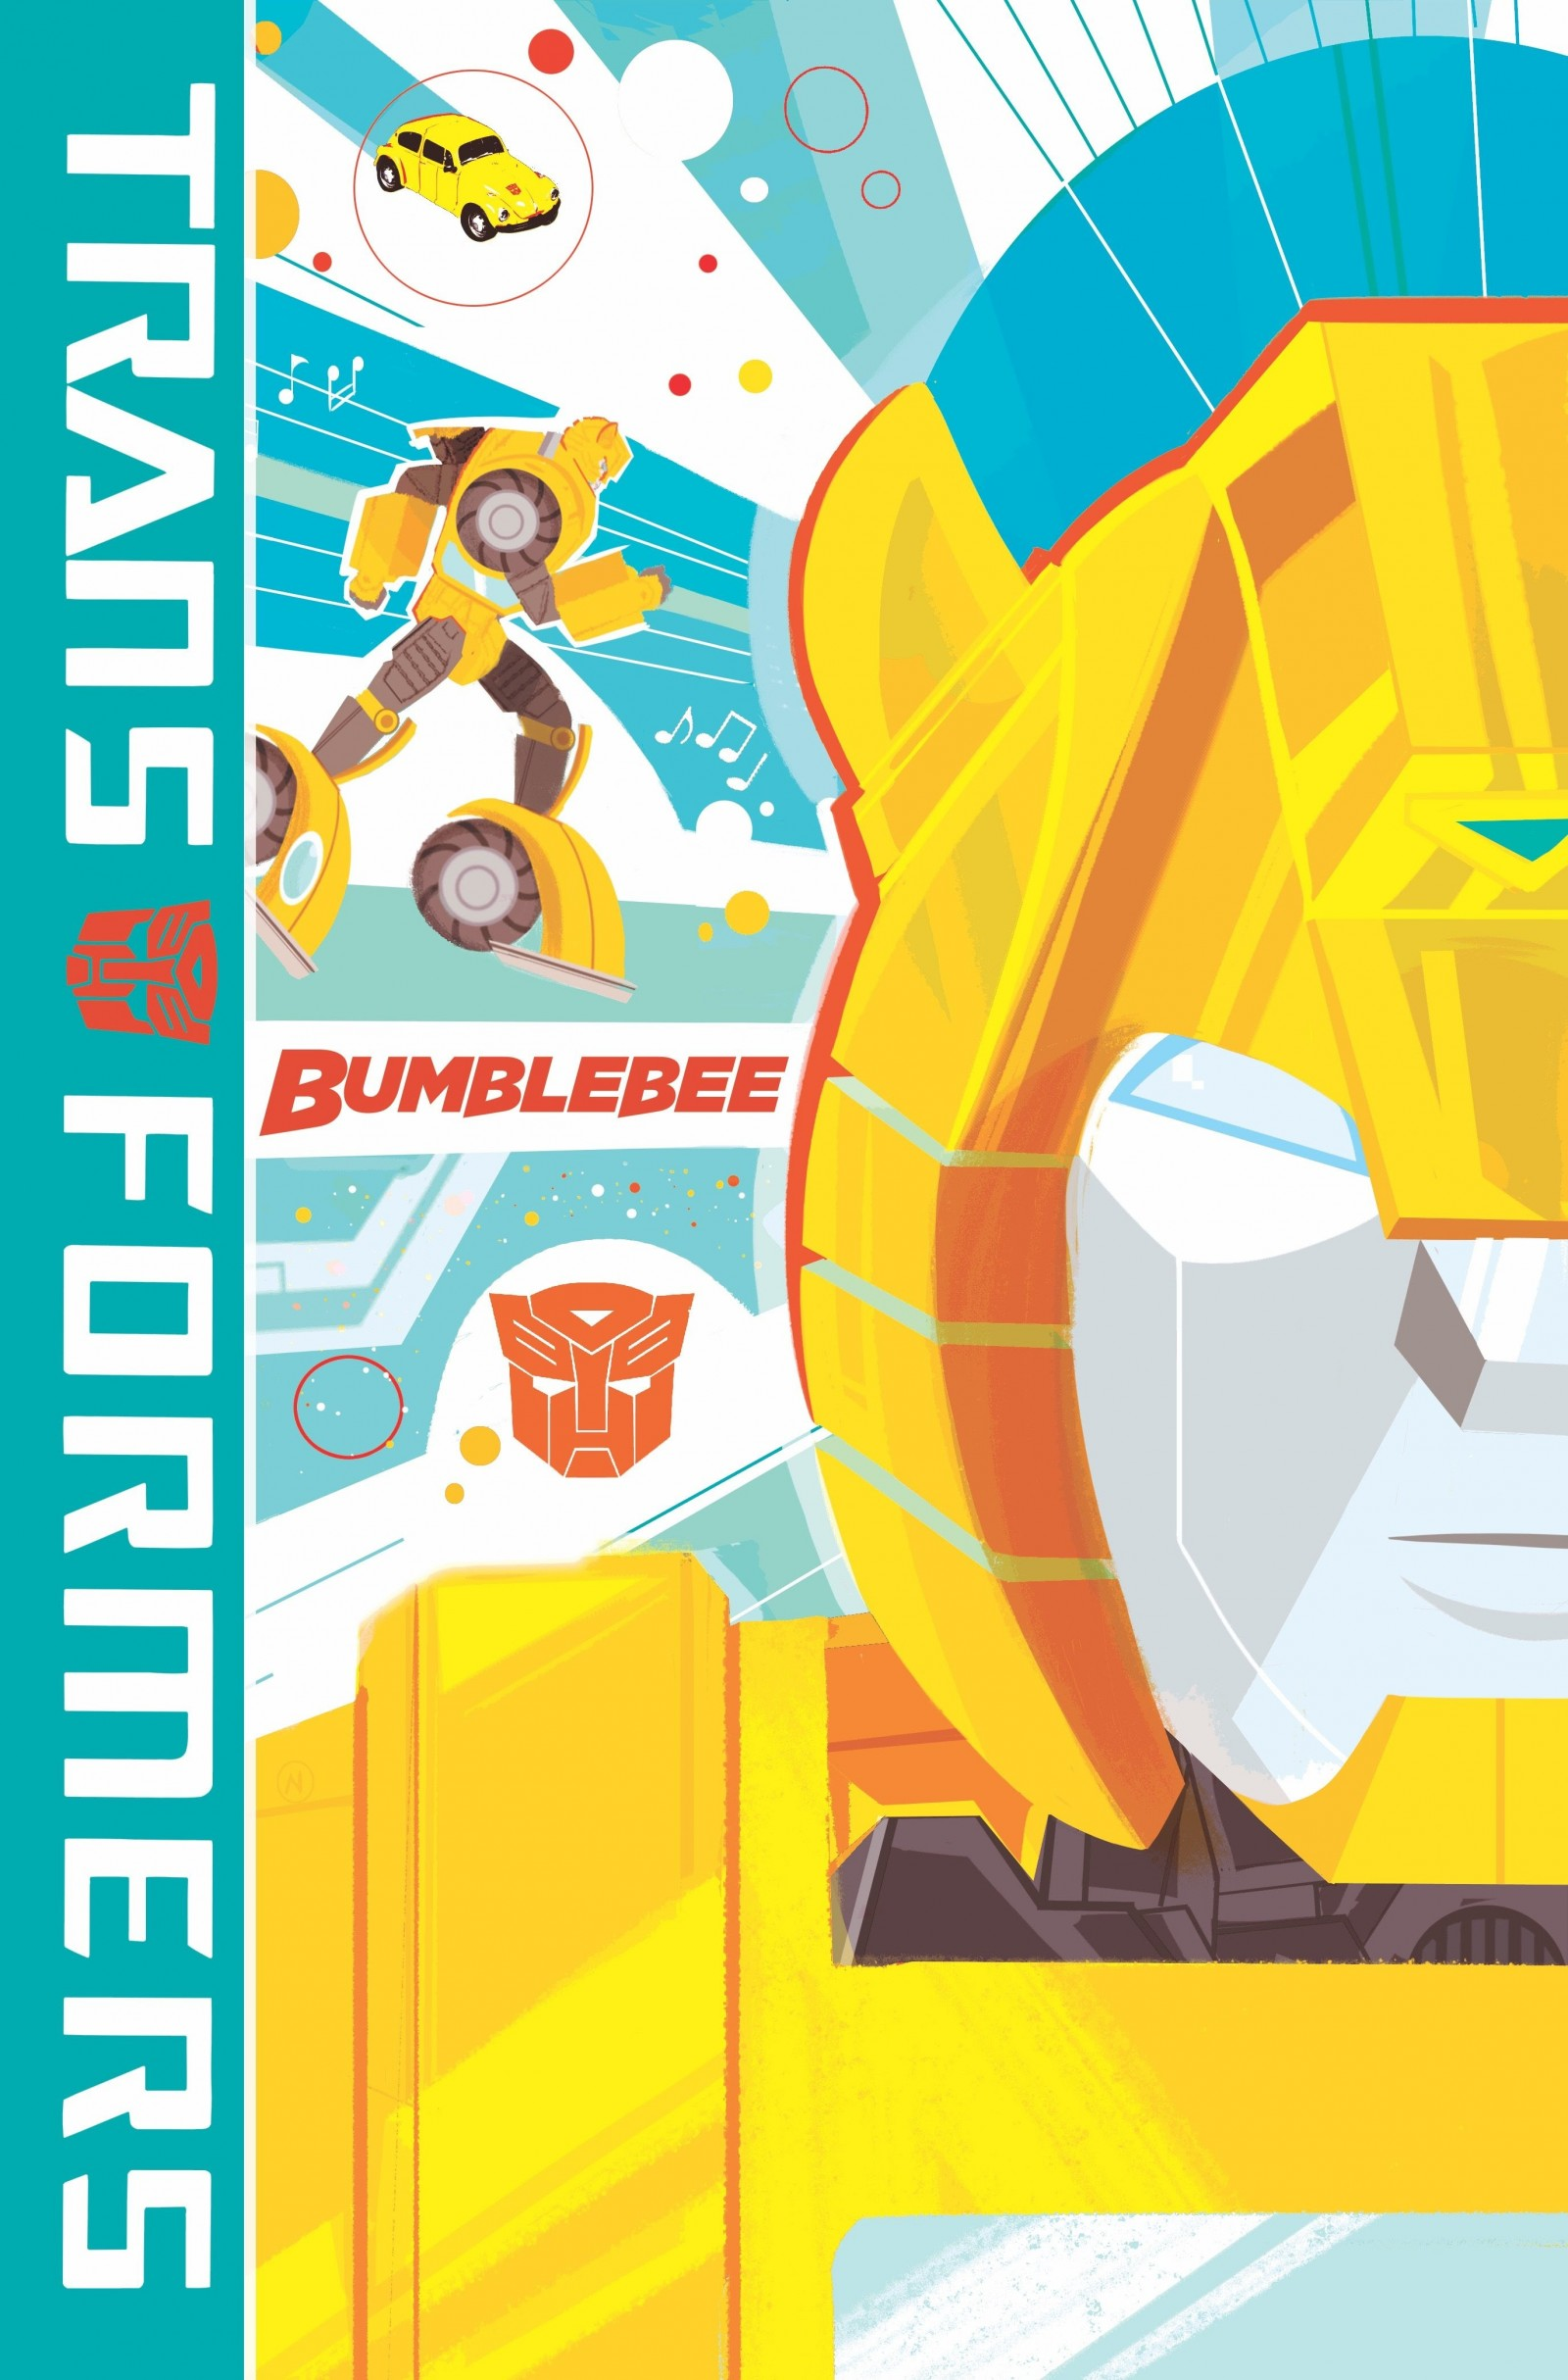 Transformers News: IDW Press Release - Transformers Original Graphic Novel Starring Bumblebee